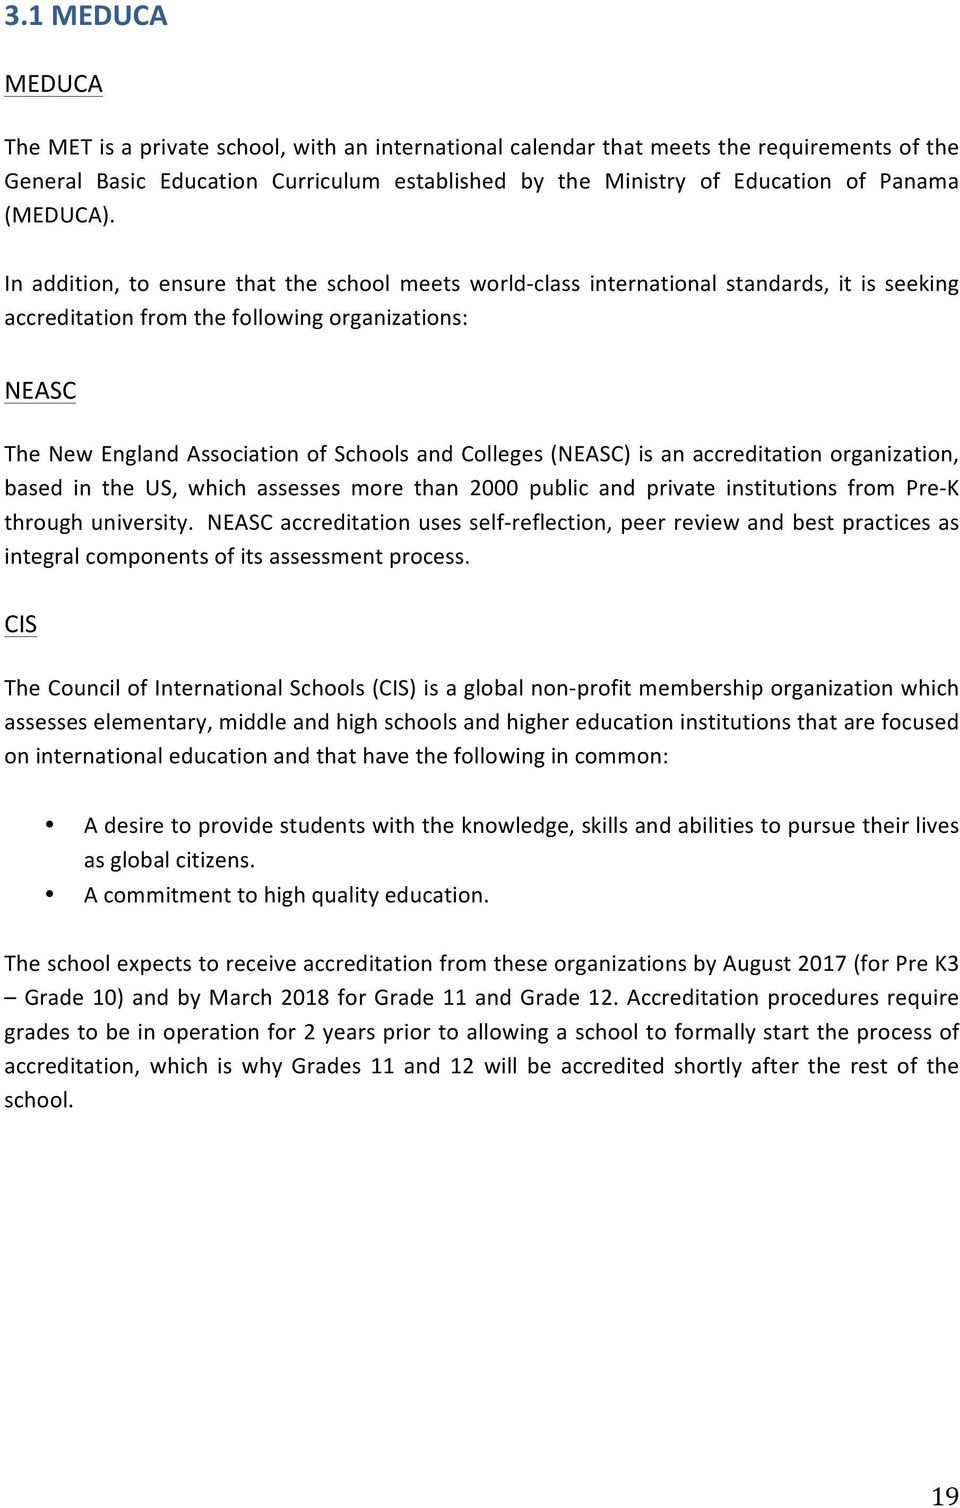 In addition, to ensure that the school meets world- class international standards, it is seeking accreditation from the following organizations: NEASC The New England Association of Schools and